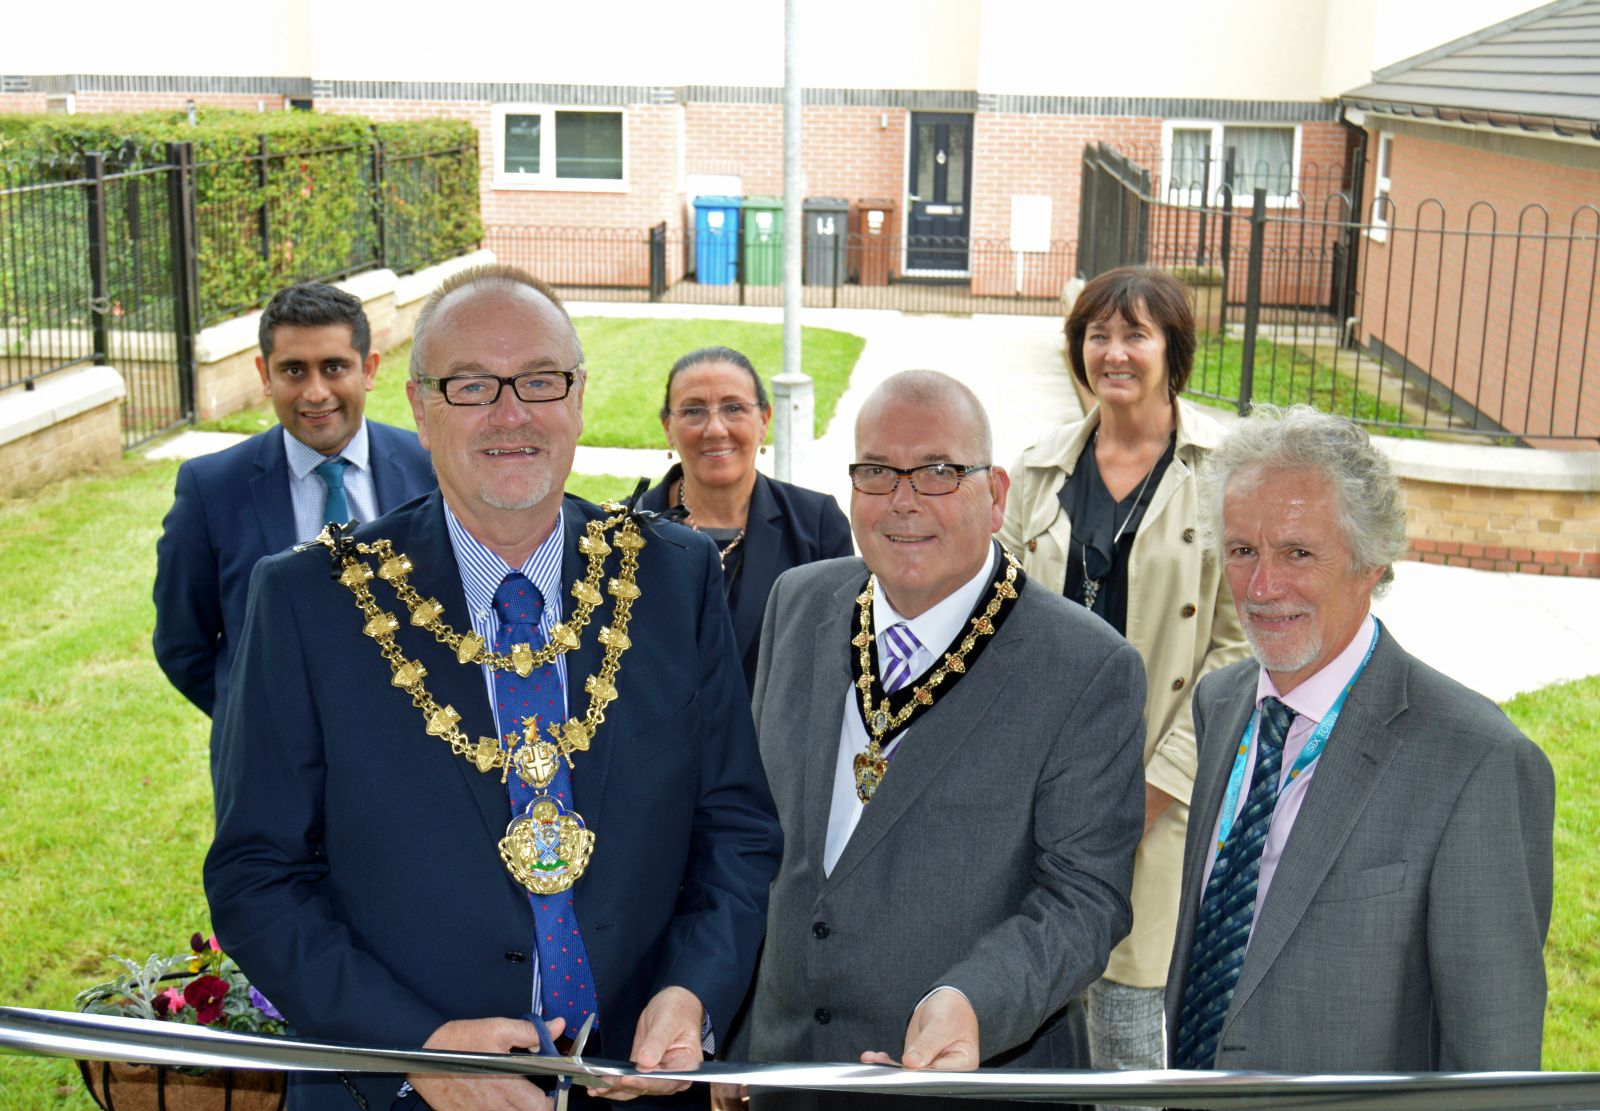 St Thomas estate in Radcliffe has reopened following regeneration work